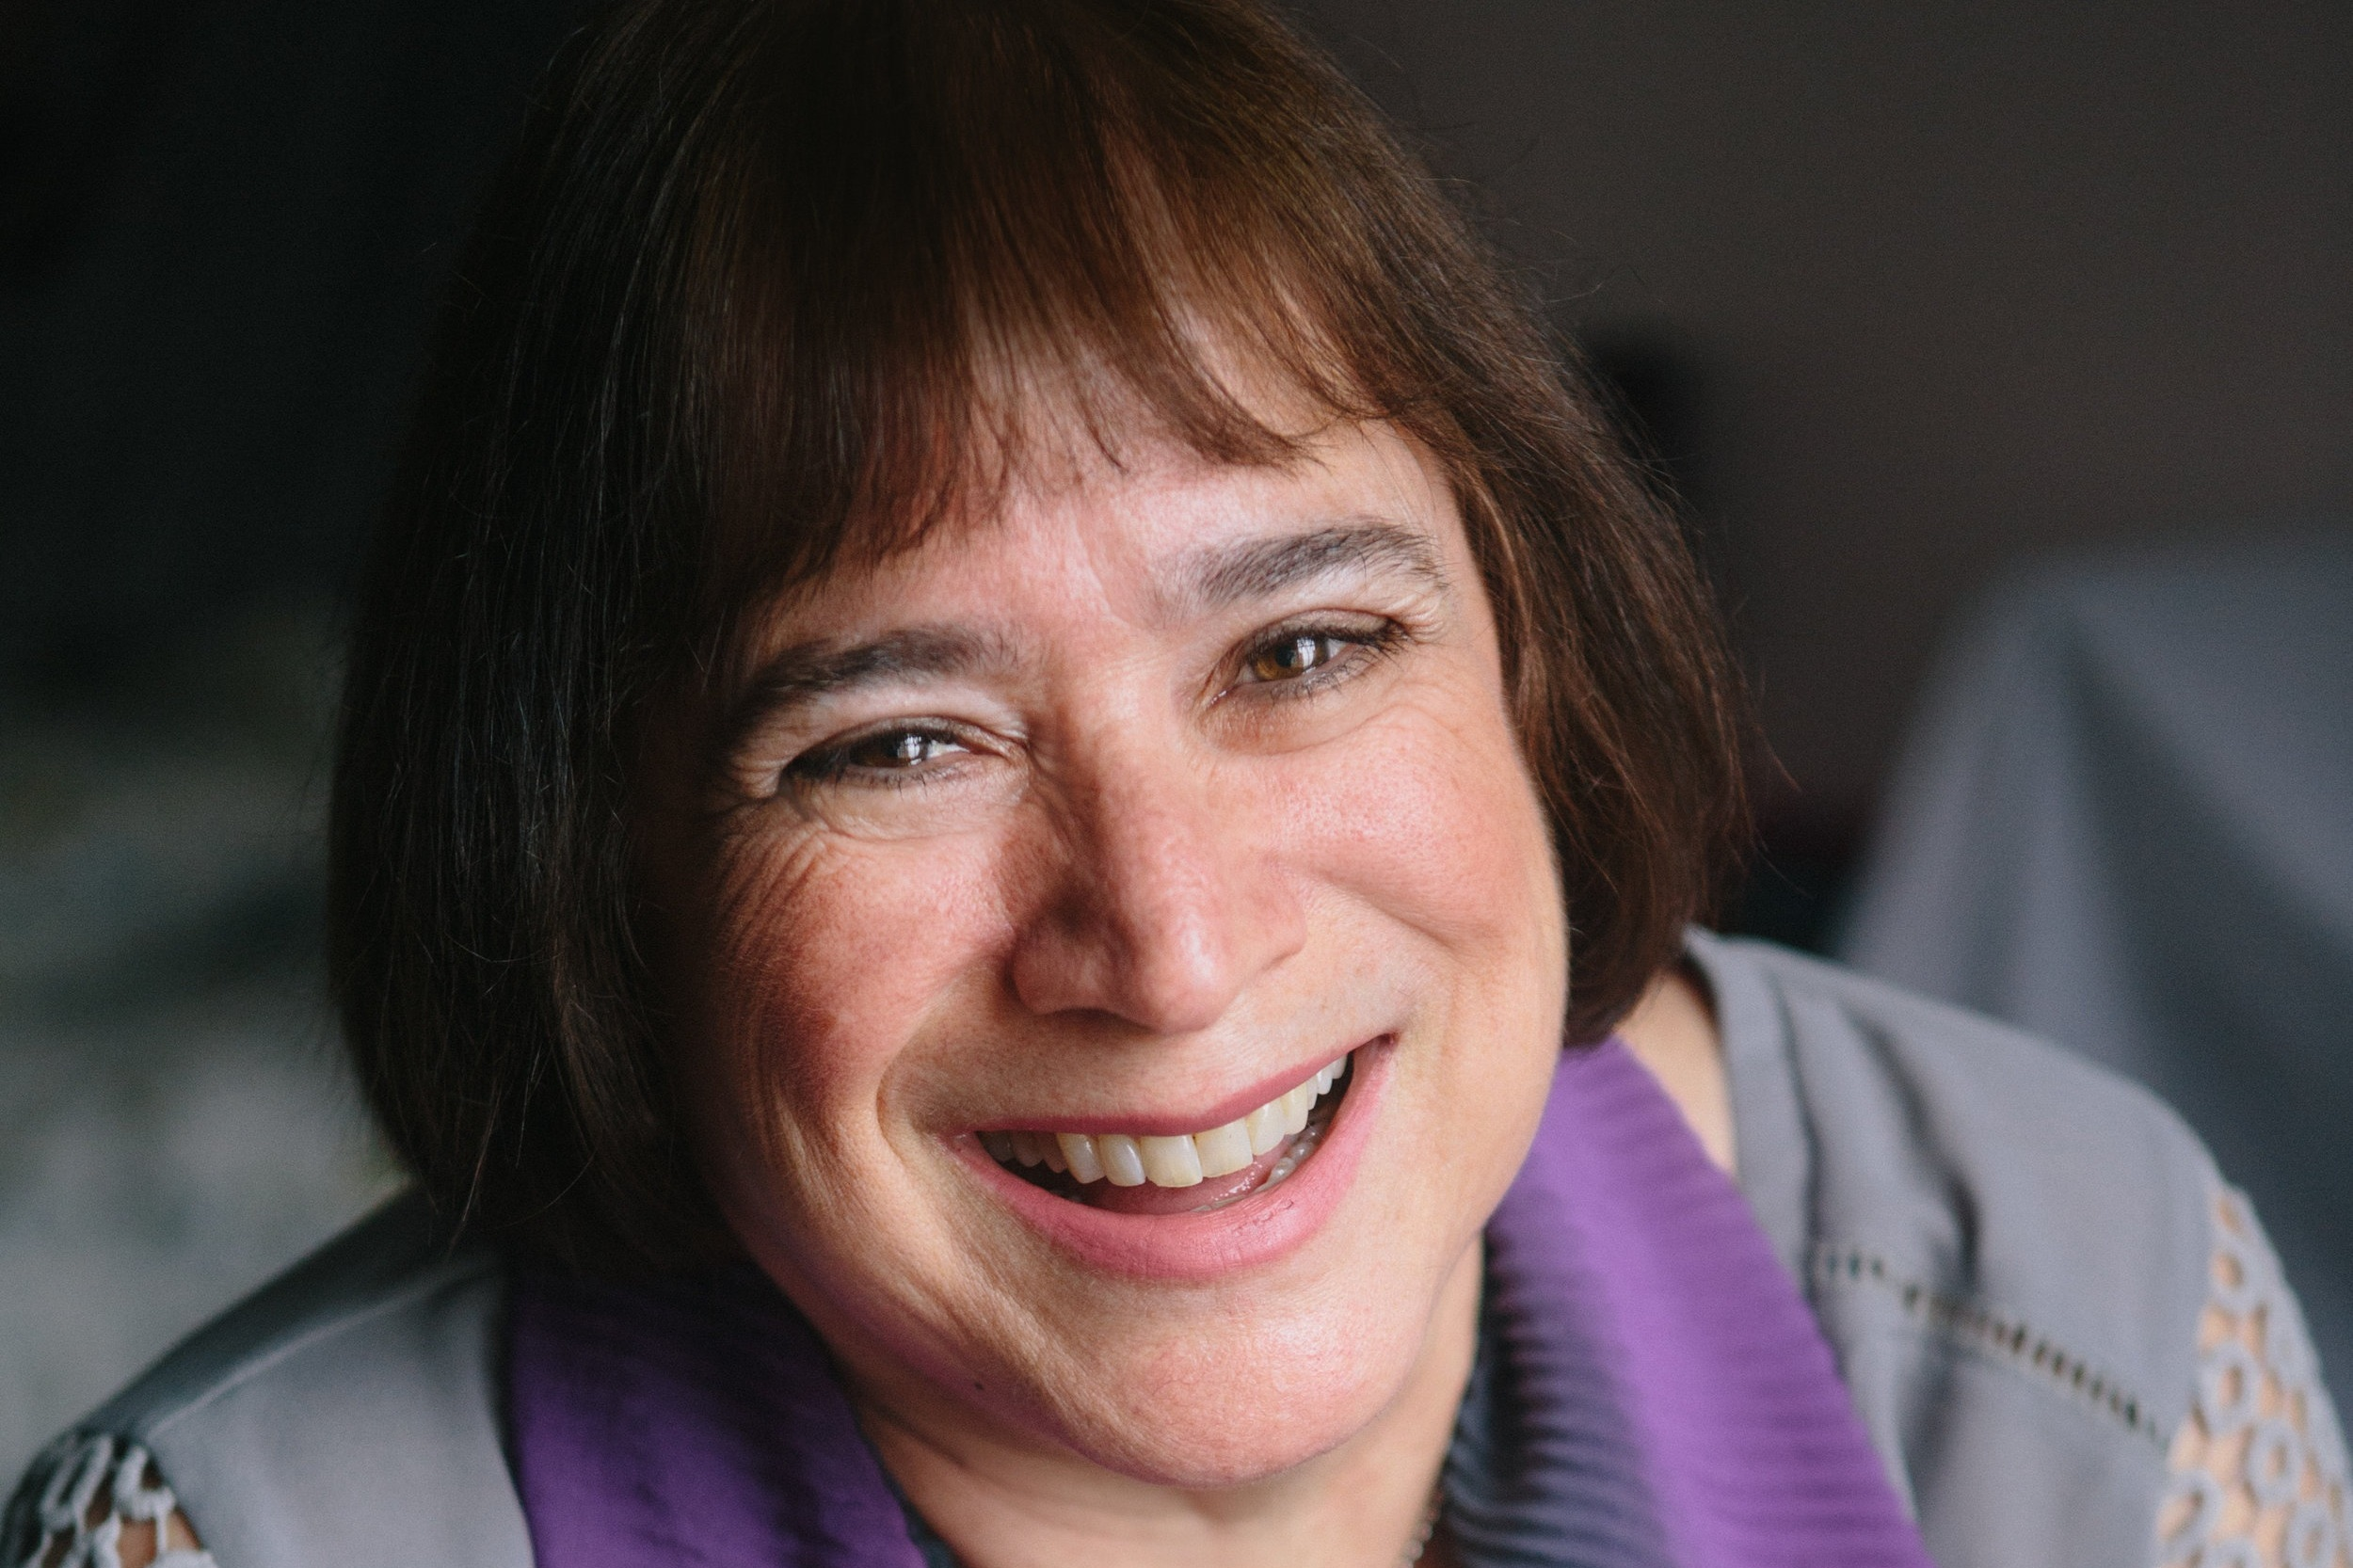 Gail Wein - Publicist and President, Classical Music Communications